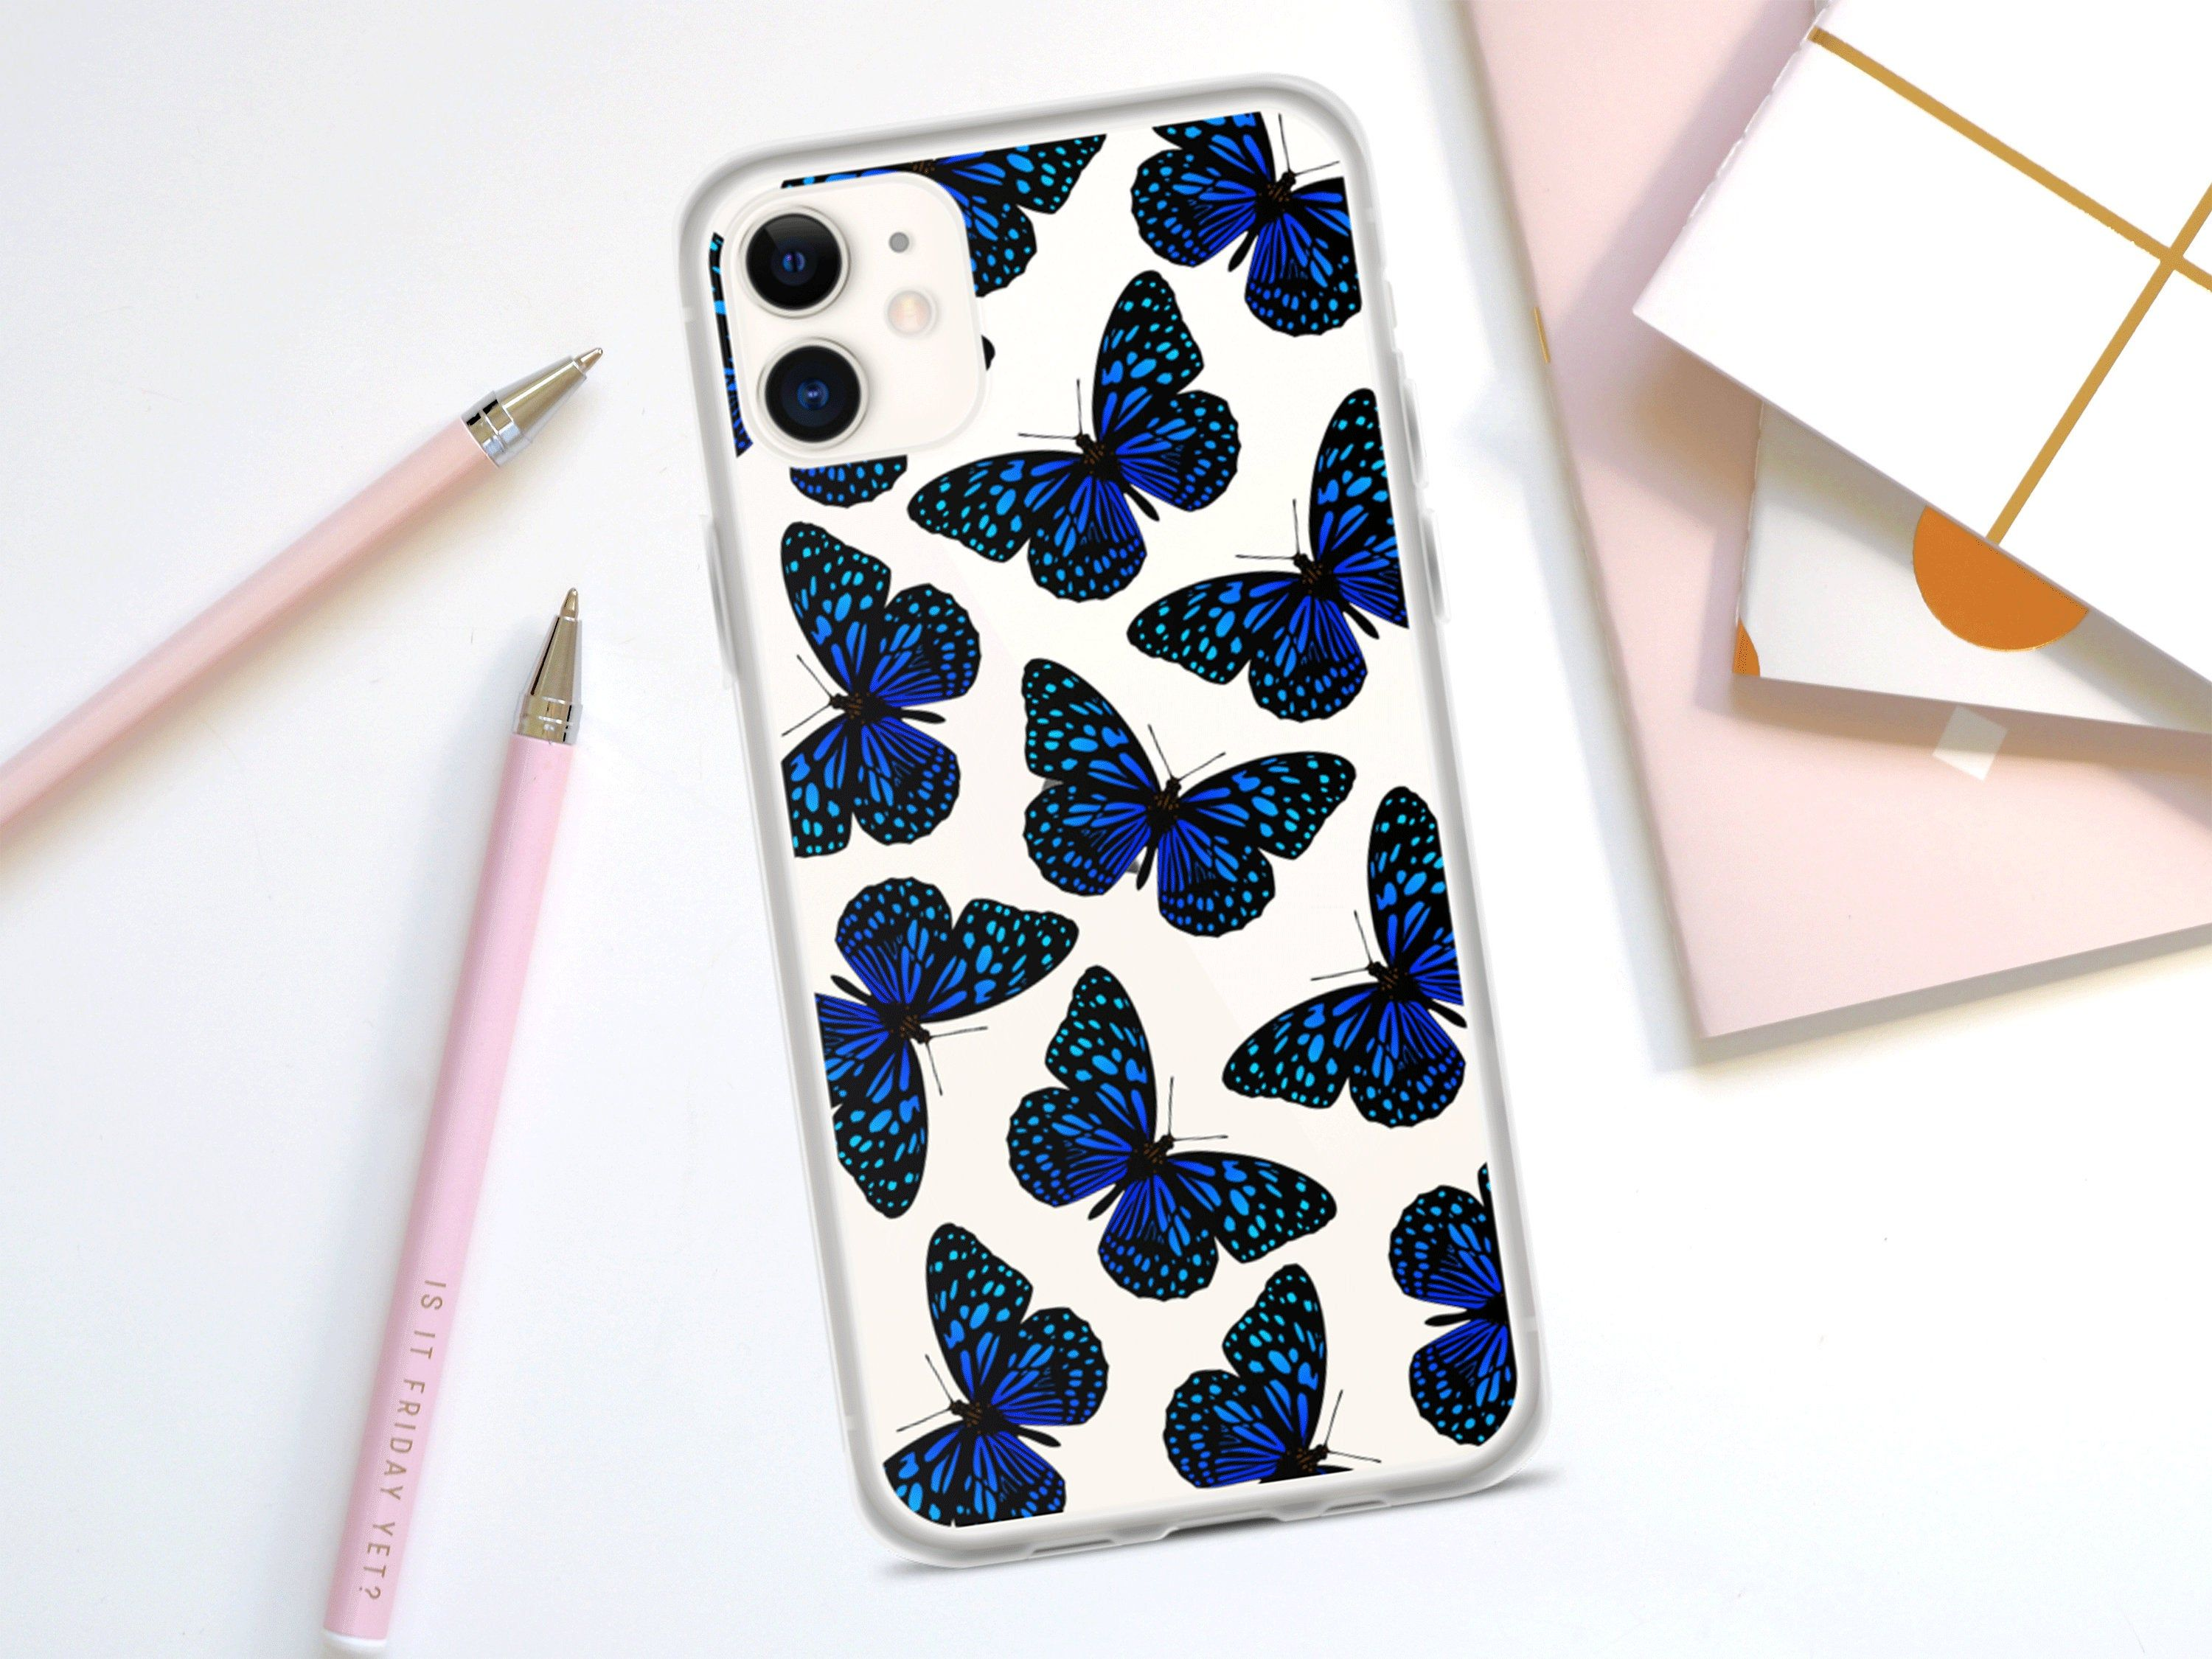 Saleclear Butterfly Iphone Casesiphone 11 Caseiphone 11 Etsy Iphone Phone Cases Iphone Cases Girly Iphone Case